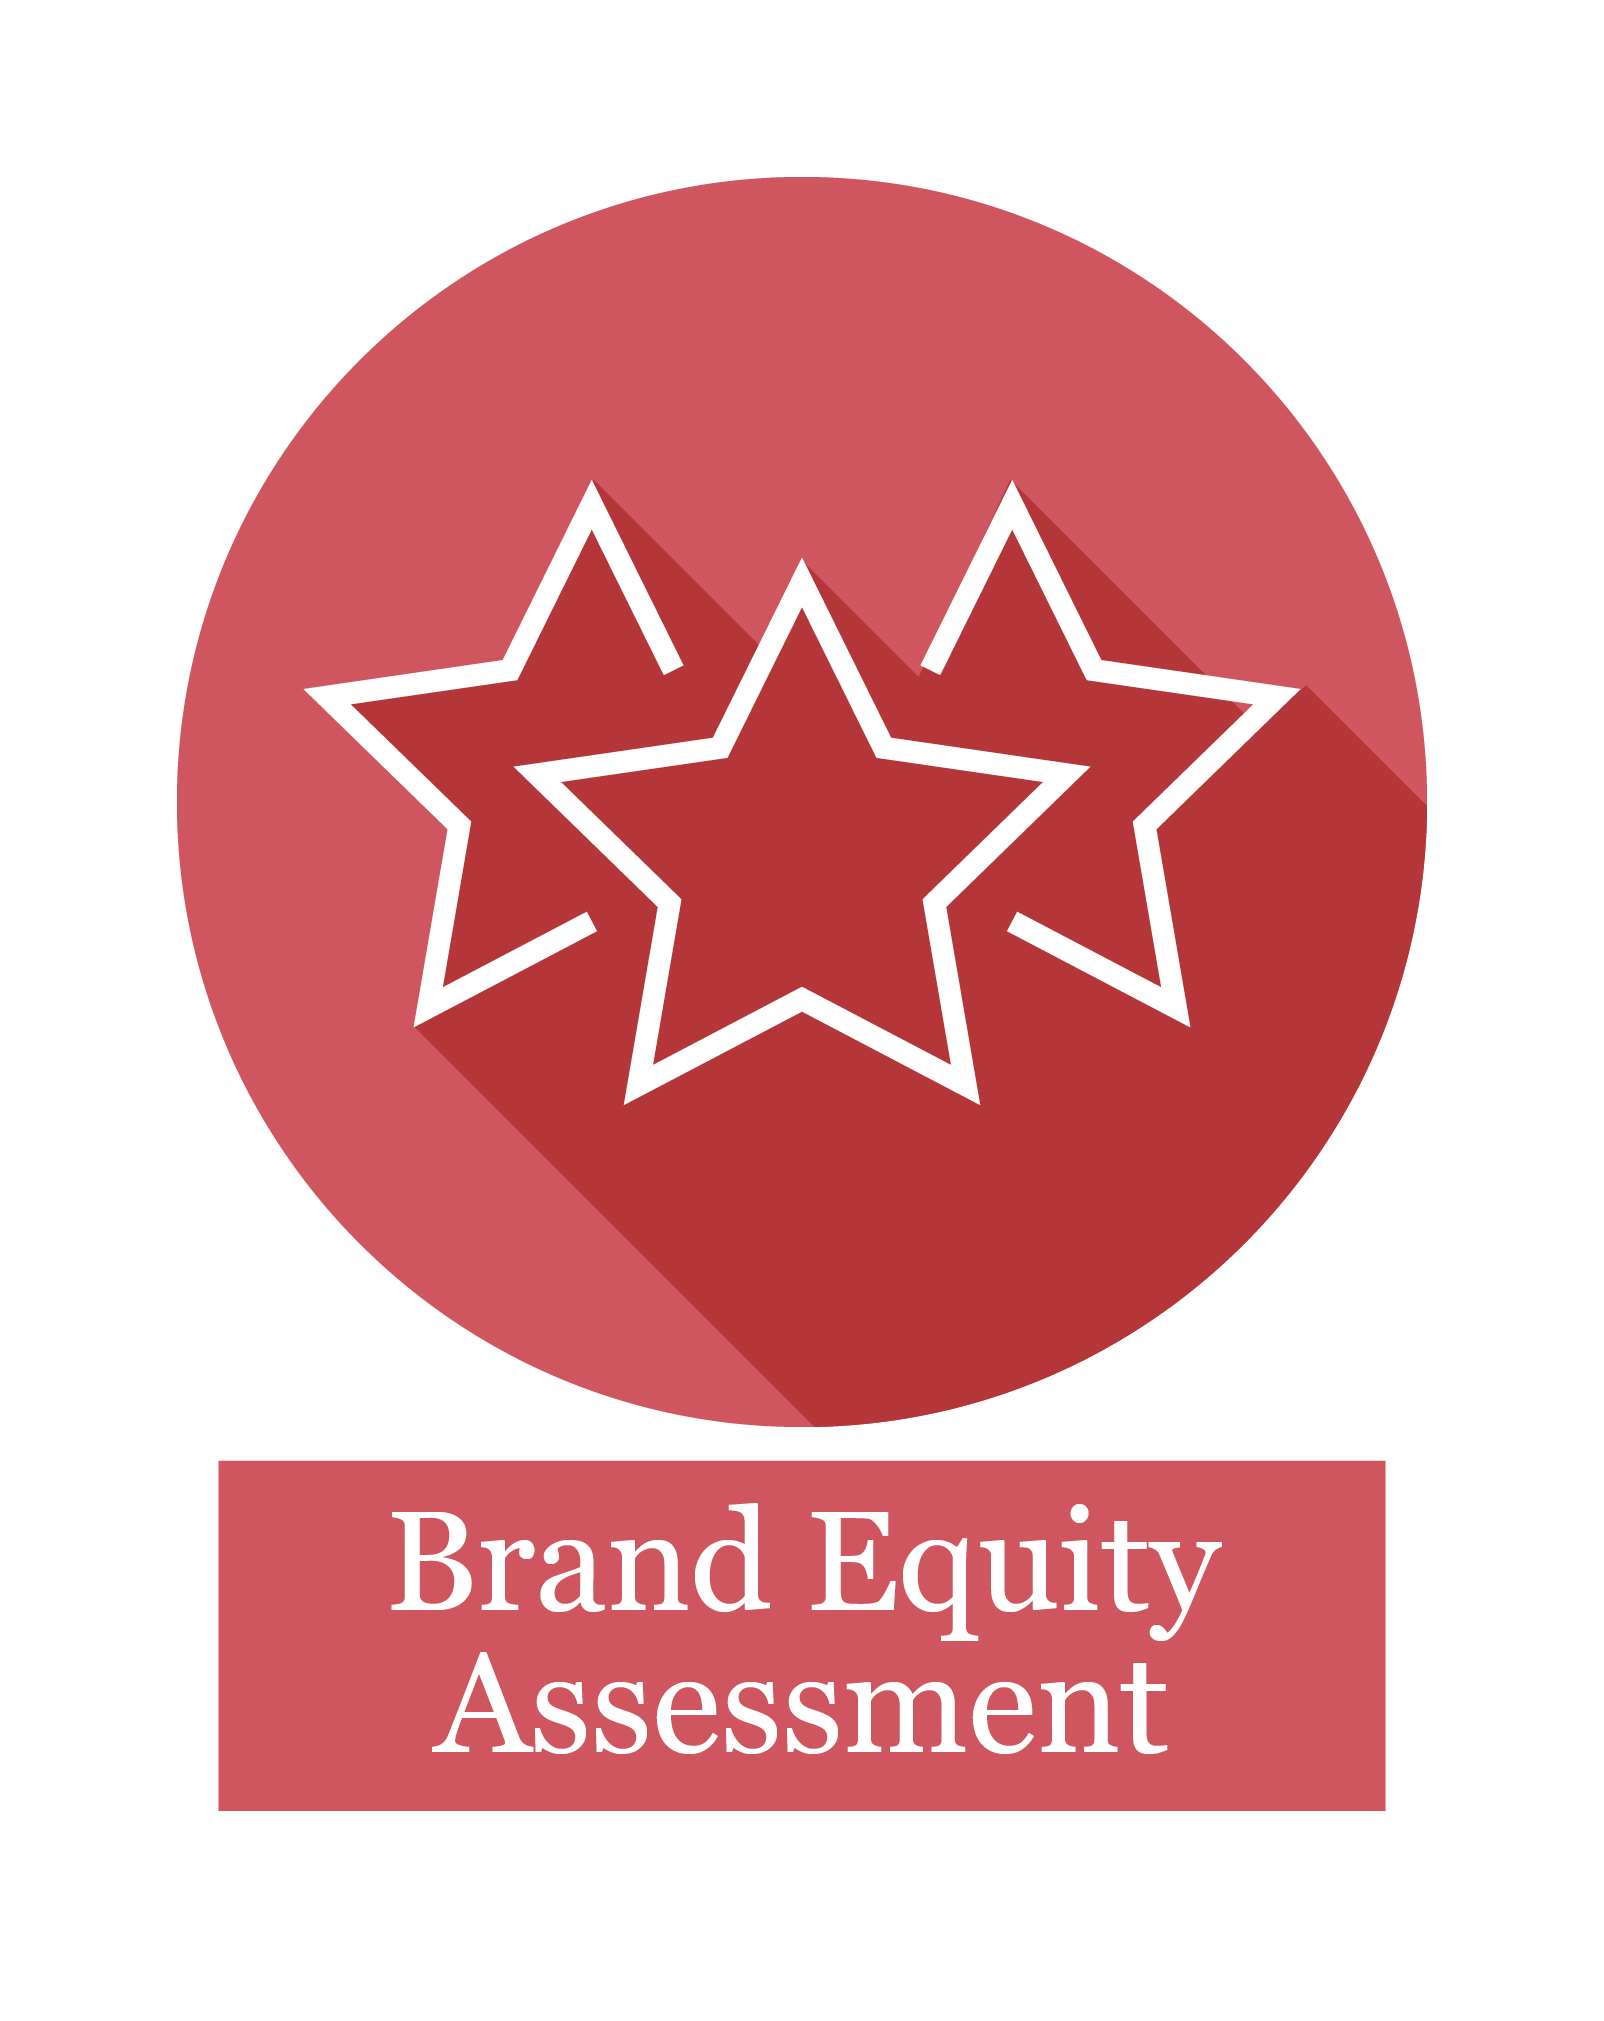 - We developed an agile approach to assessing brand equity, because clients tell us that traditional methods cost too much and are too focused on the needs of market leaders. Our approach is designed specifically for brands with a challenger mentality.We use a smart mix of measures including implicit and non-verbal, to reflect how consumers really think and feel.We reveal and measure your brand's distinctive assets and personality.Recommendations are developed by experts in insight and branding, to help brands challenge harder.